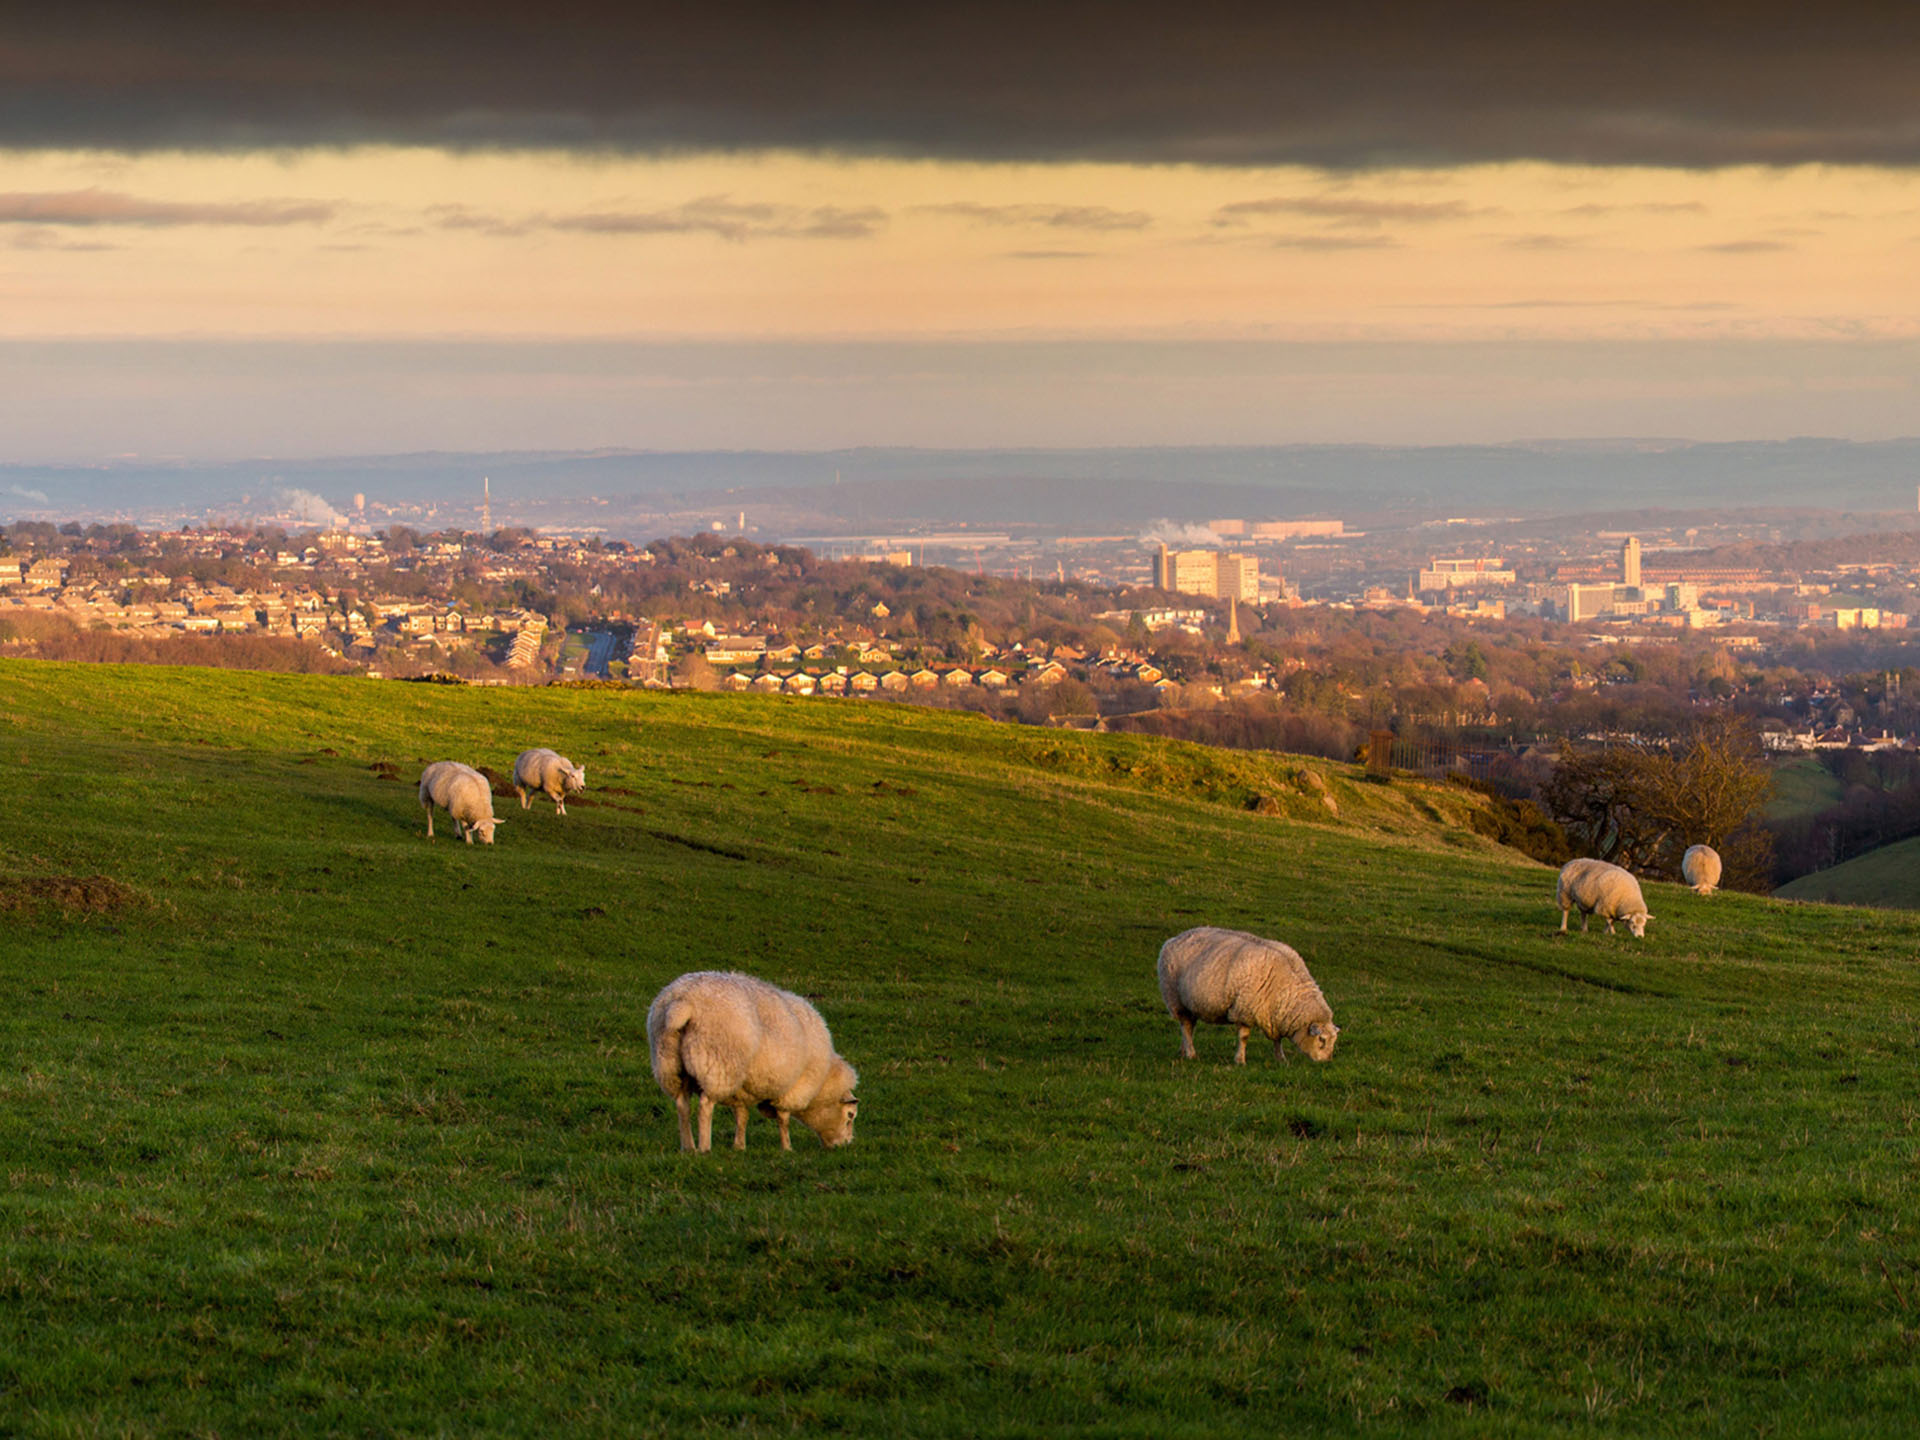 Sheep grazing in fields with Sheffield city in the backdrop